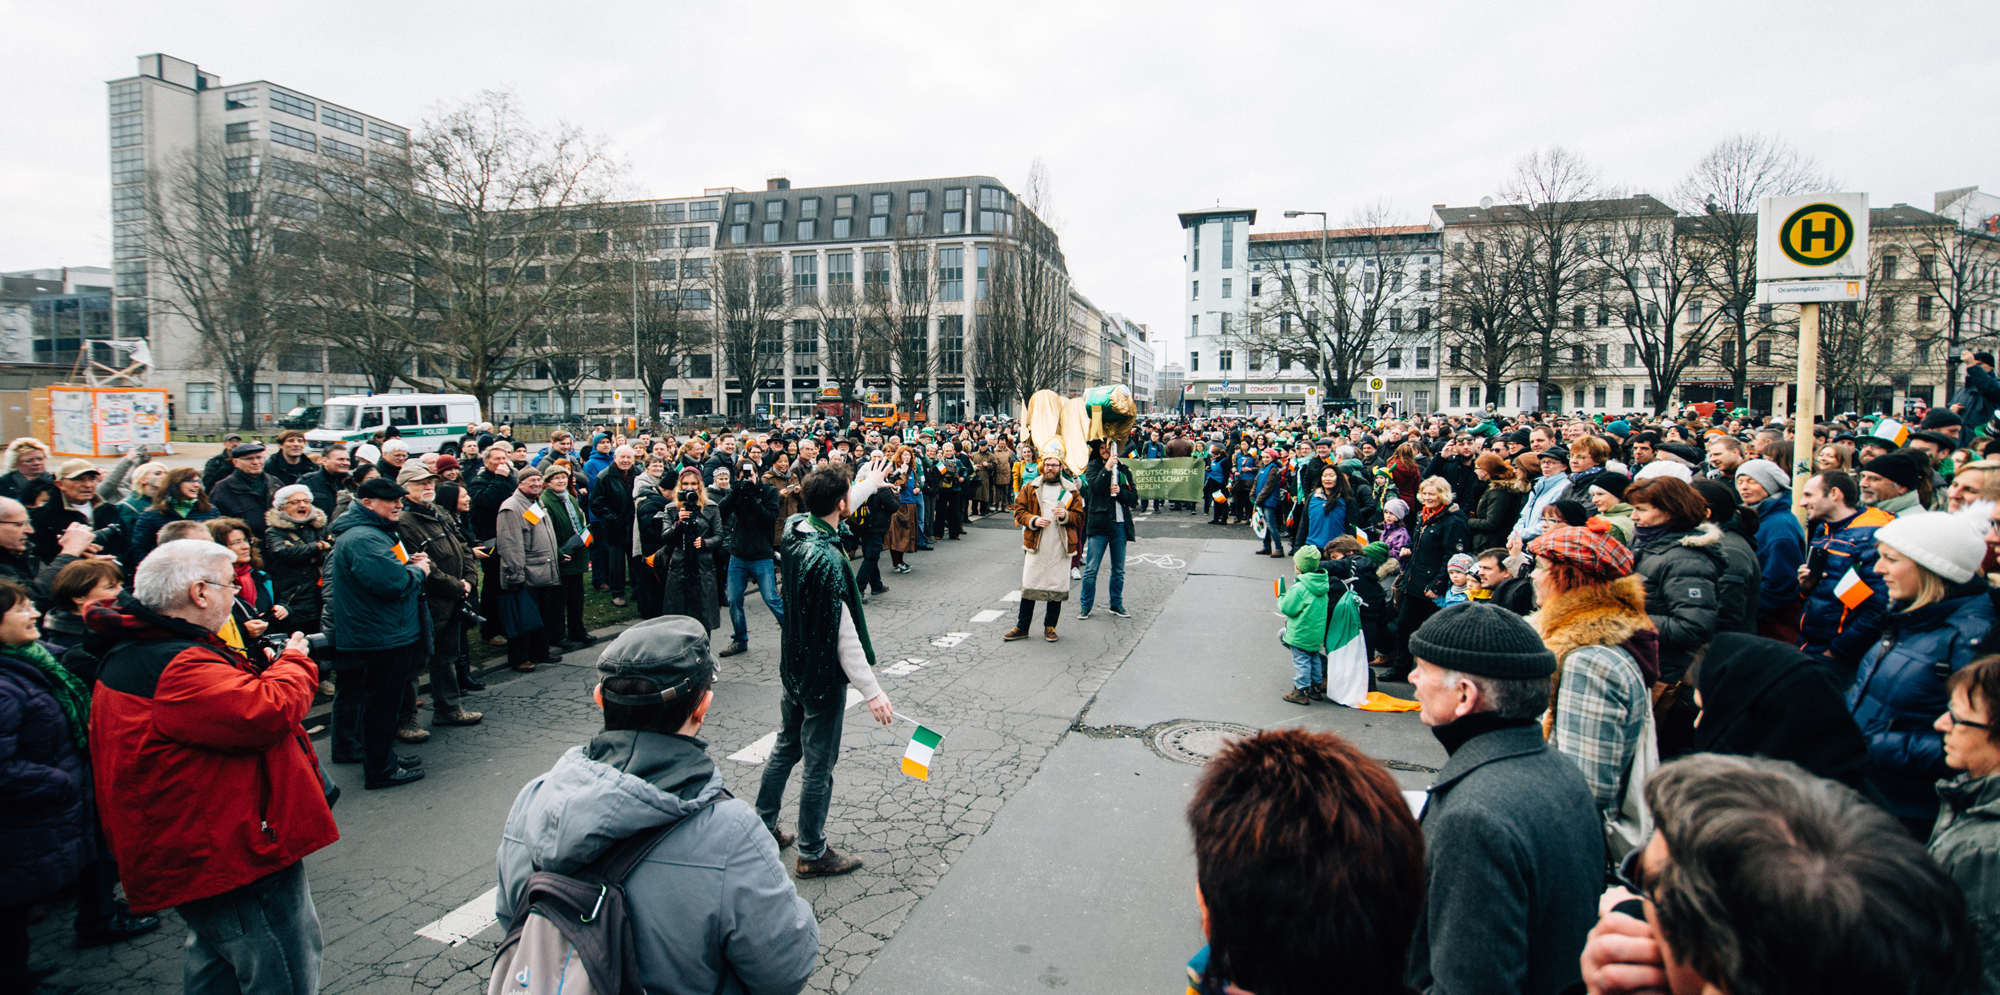 st-patricks-day-berlin-©-camille-blake-12.jpg